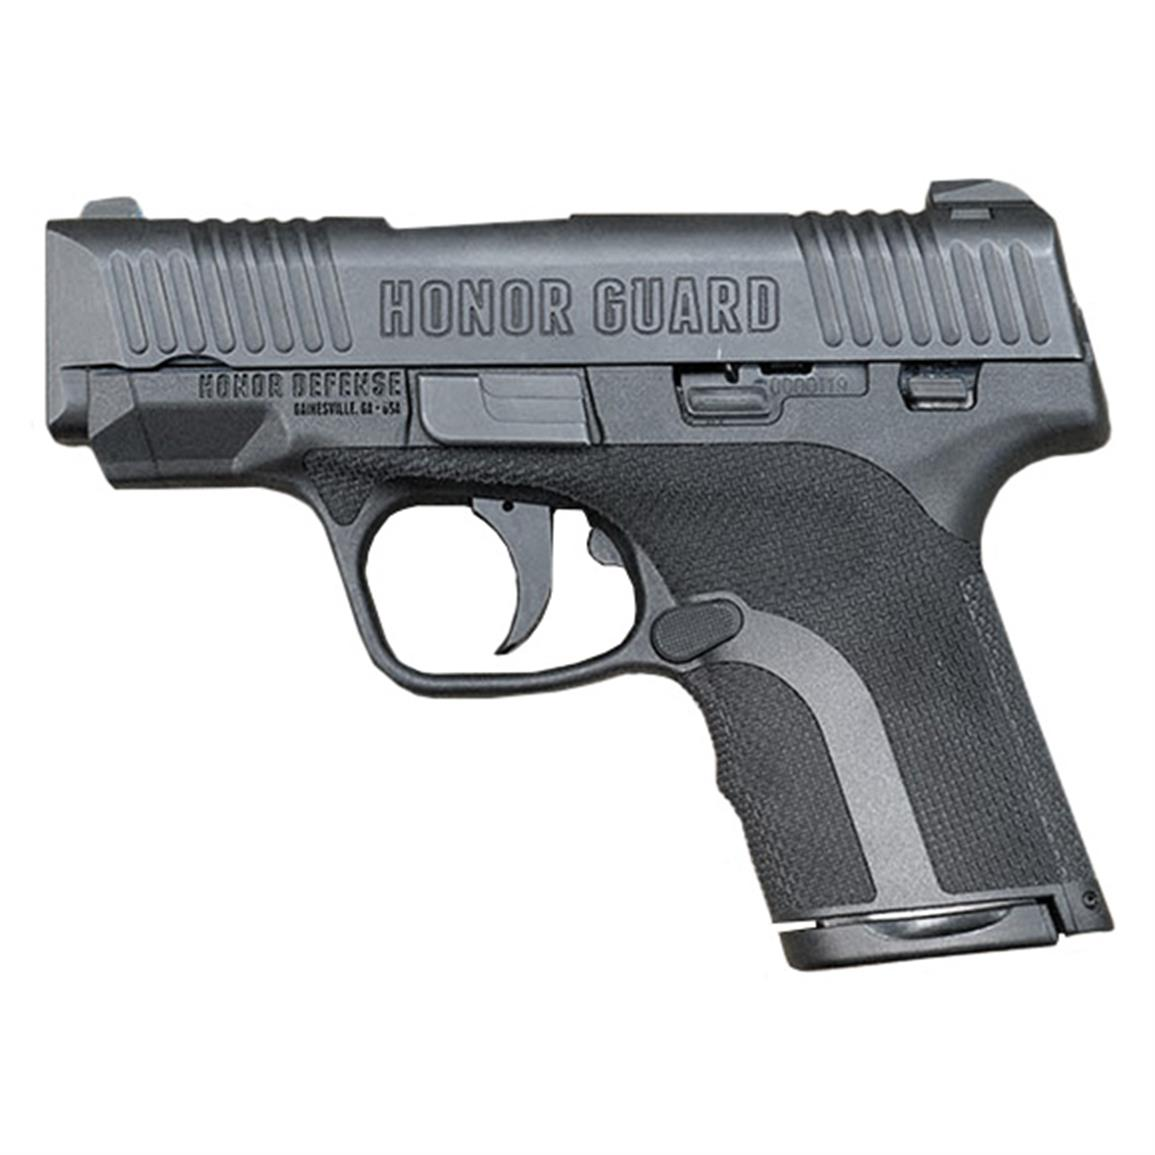 "Honor Guard Subcompact Long Slide, Semi-Automatic, 9mm, 3.8"" Barrel, 7+1 / 8+1 Rounds"